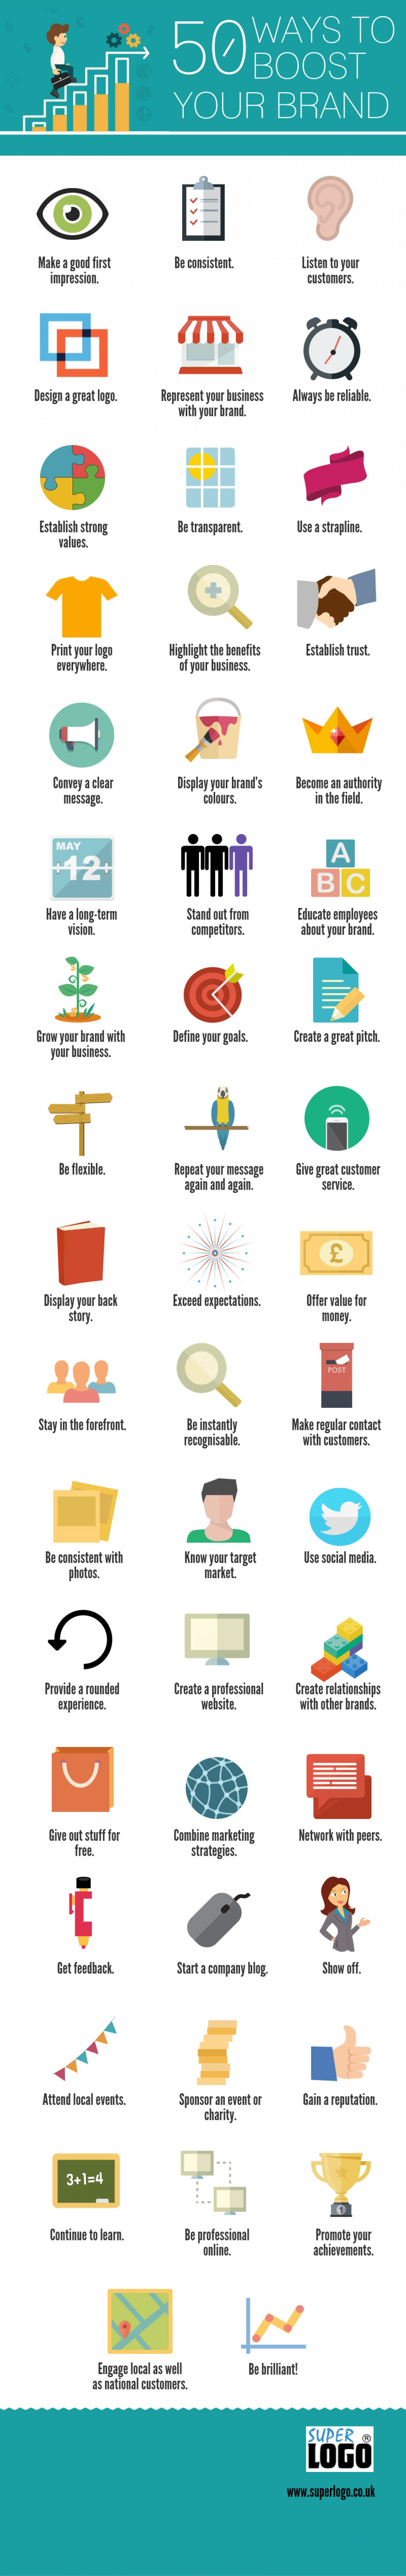 50 ways to boost your brand awareness - Infographic